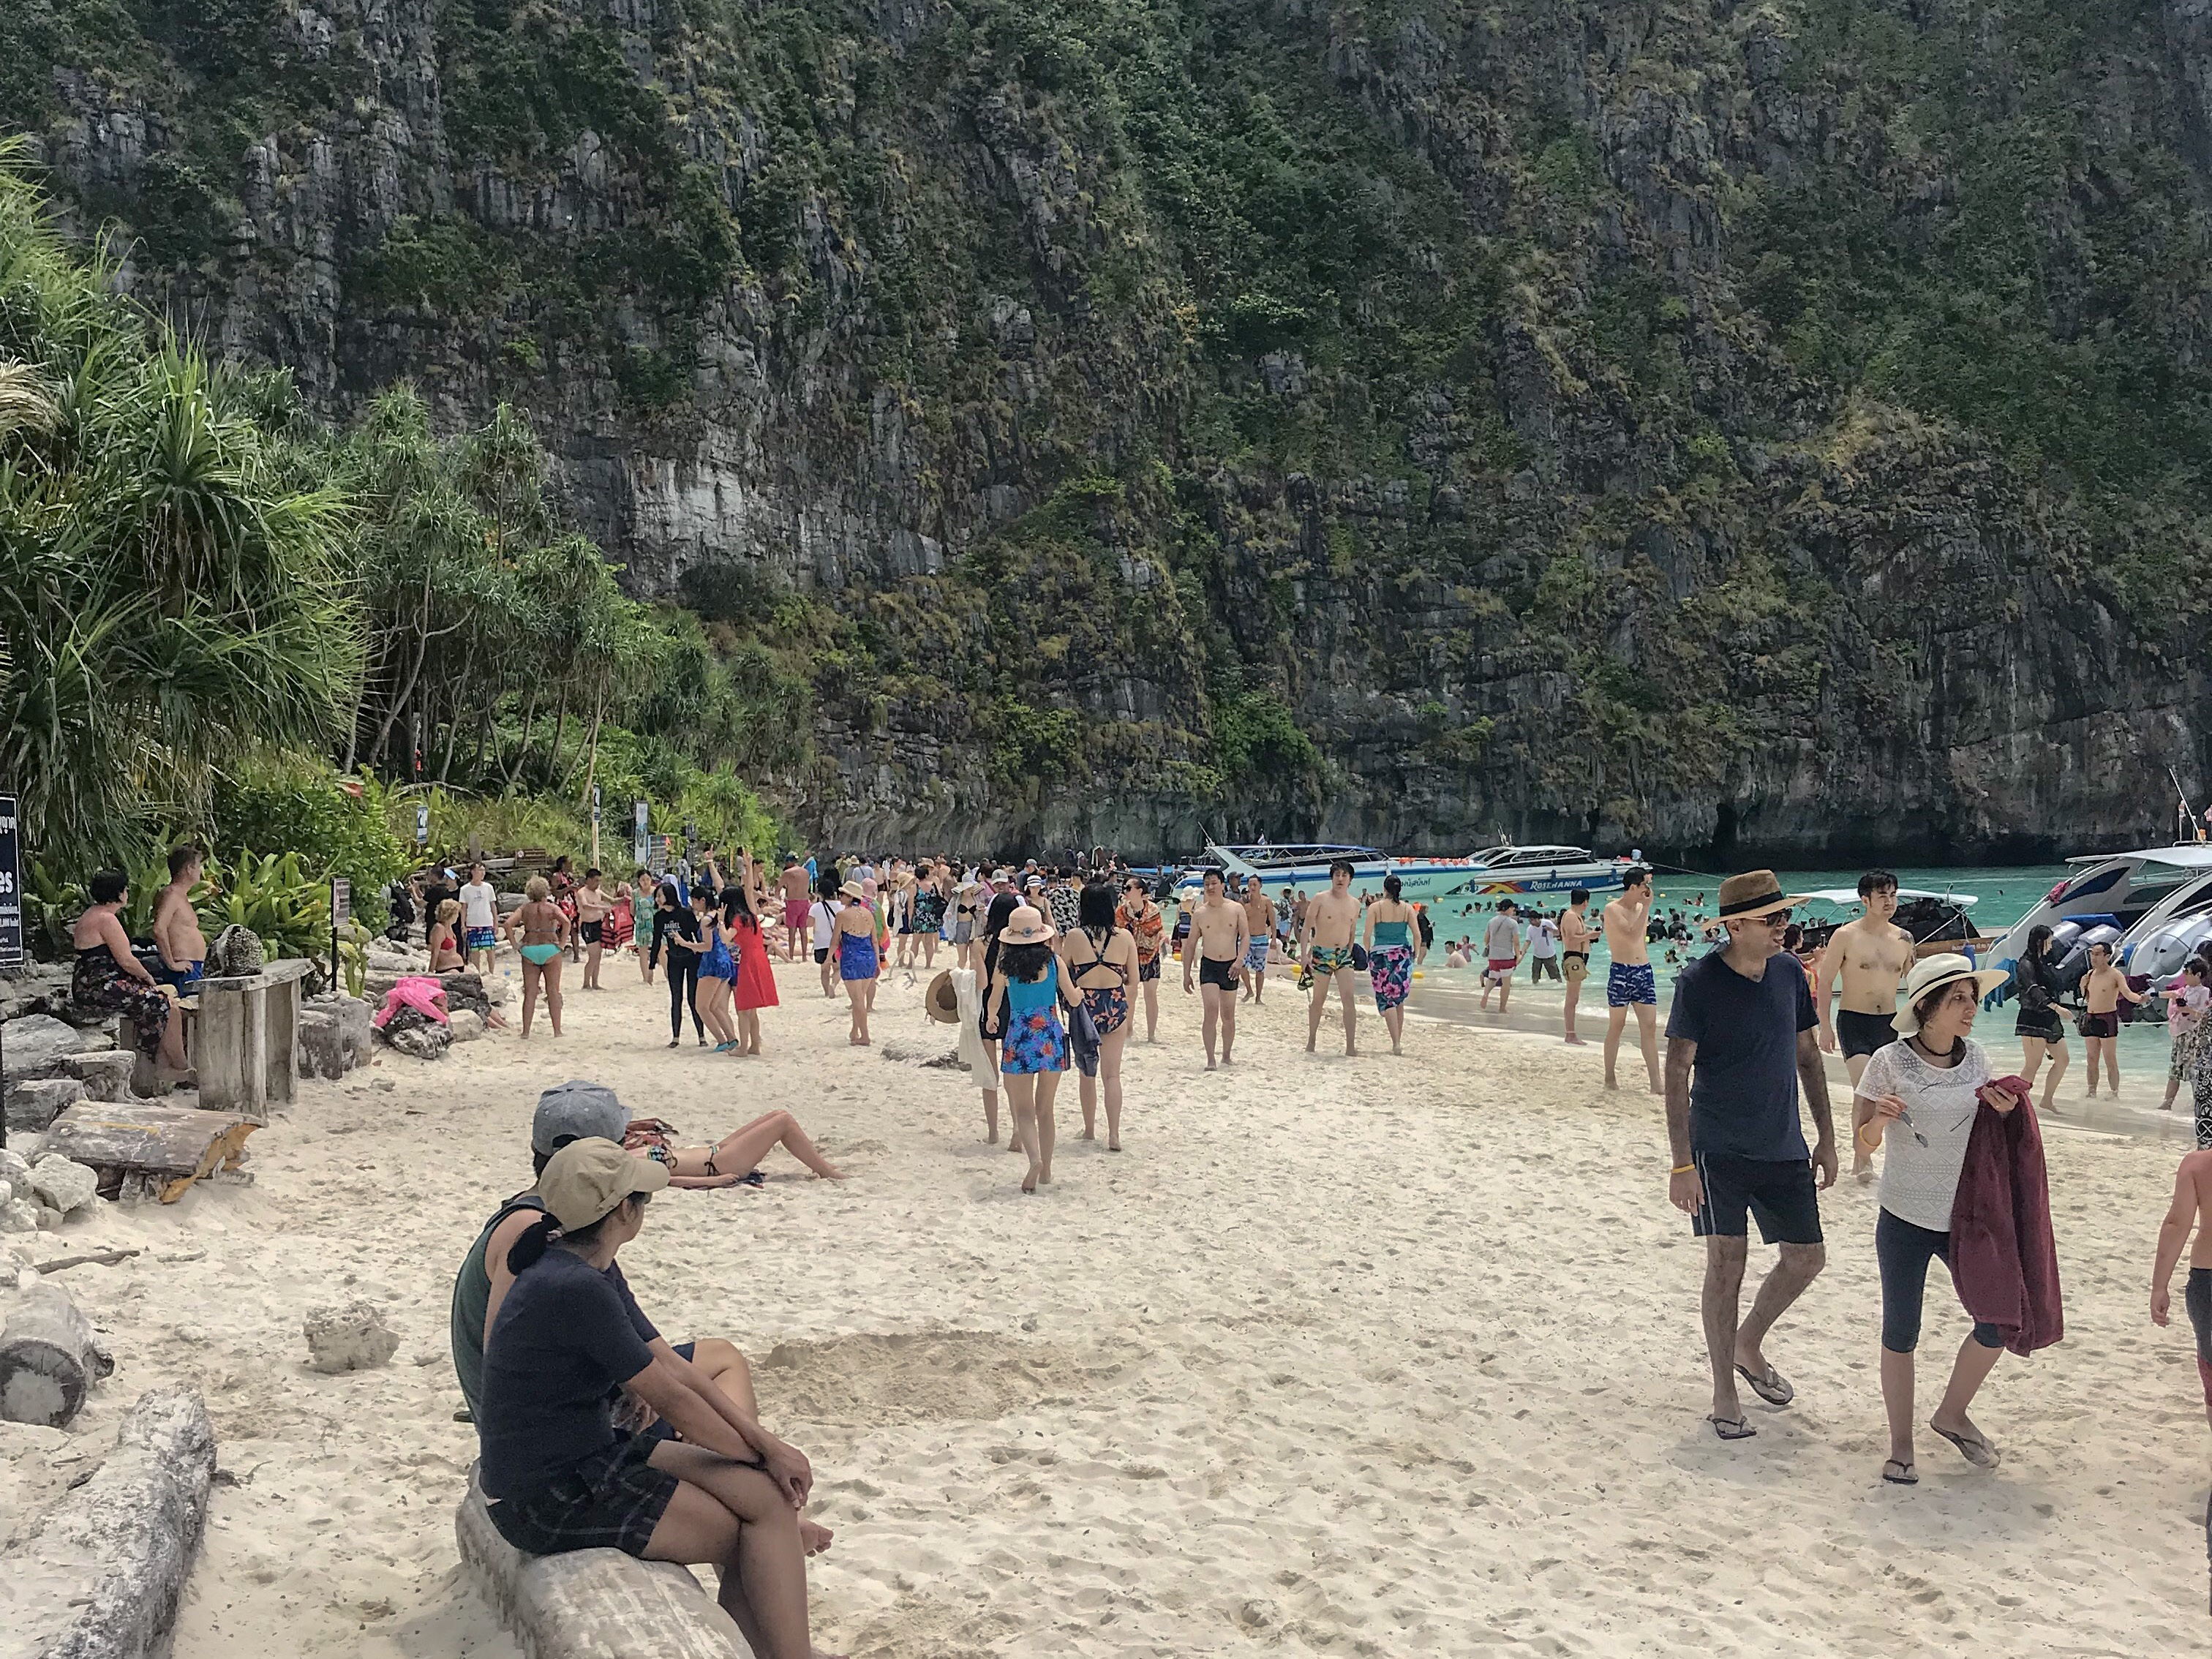 Paradise - another view of Maya Beach and the incredible numbers of people there